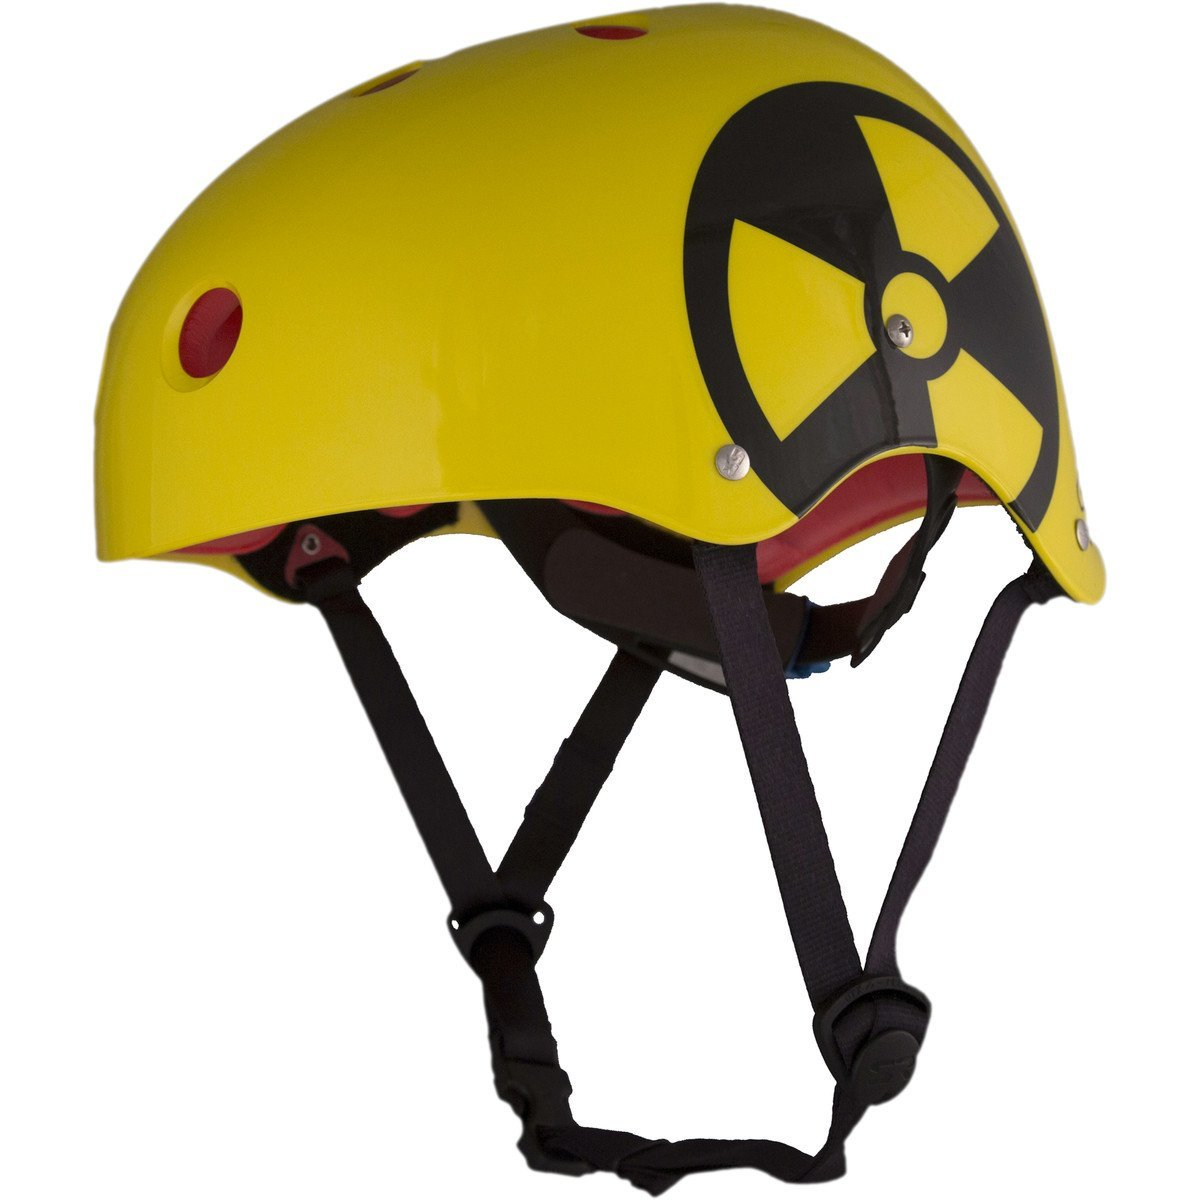 Sizes of Shred Ready Bicycle Helmets